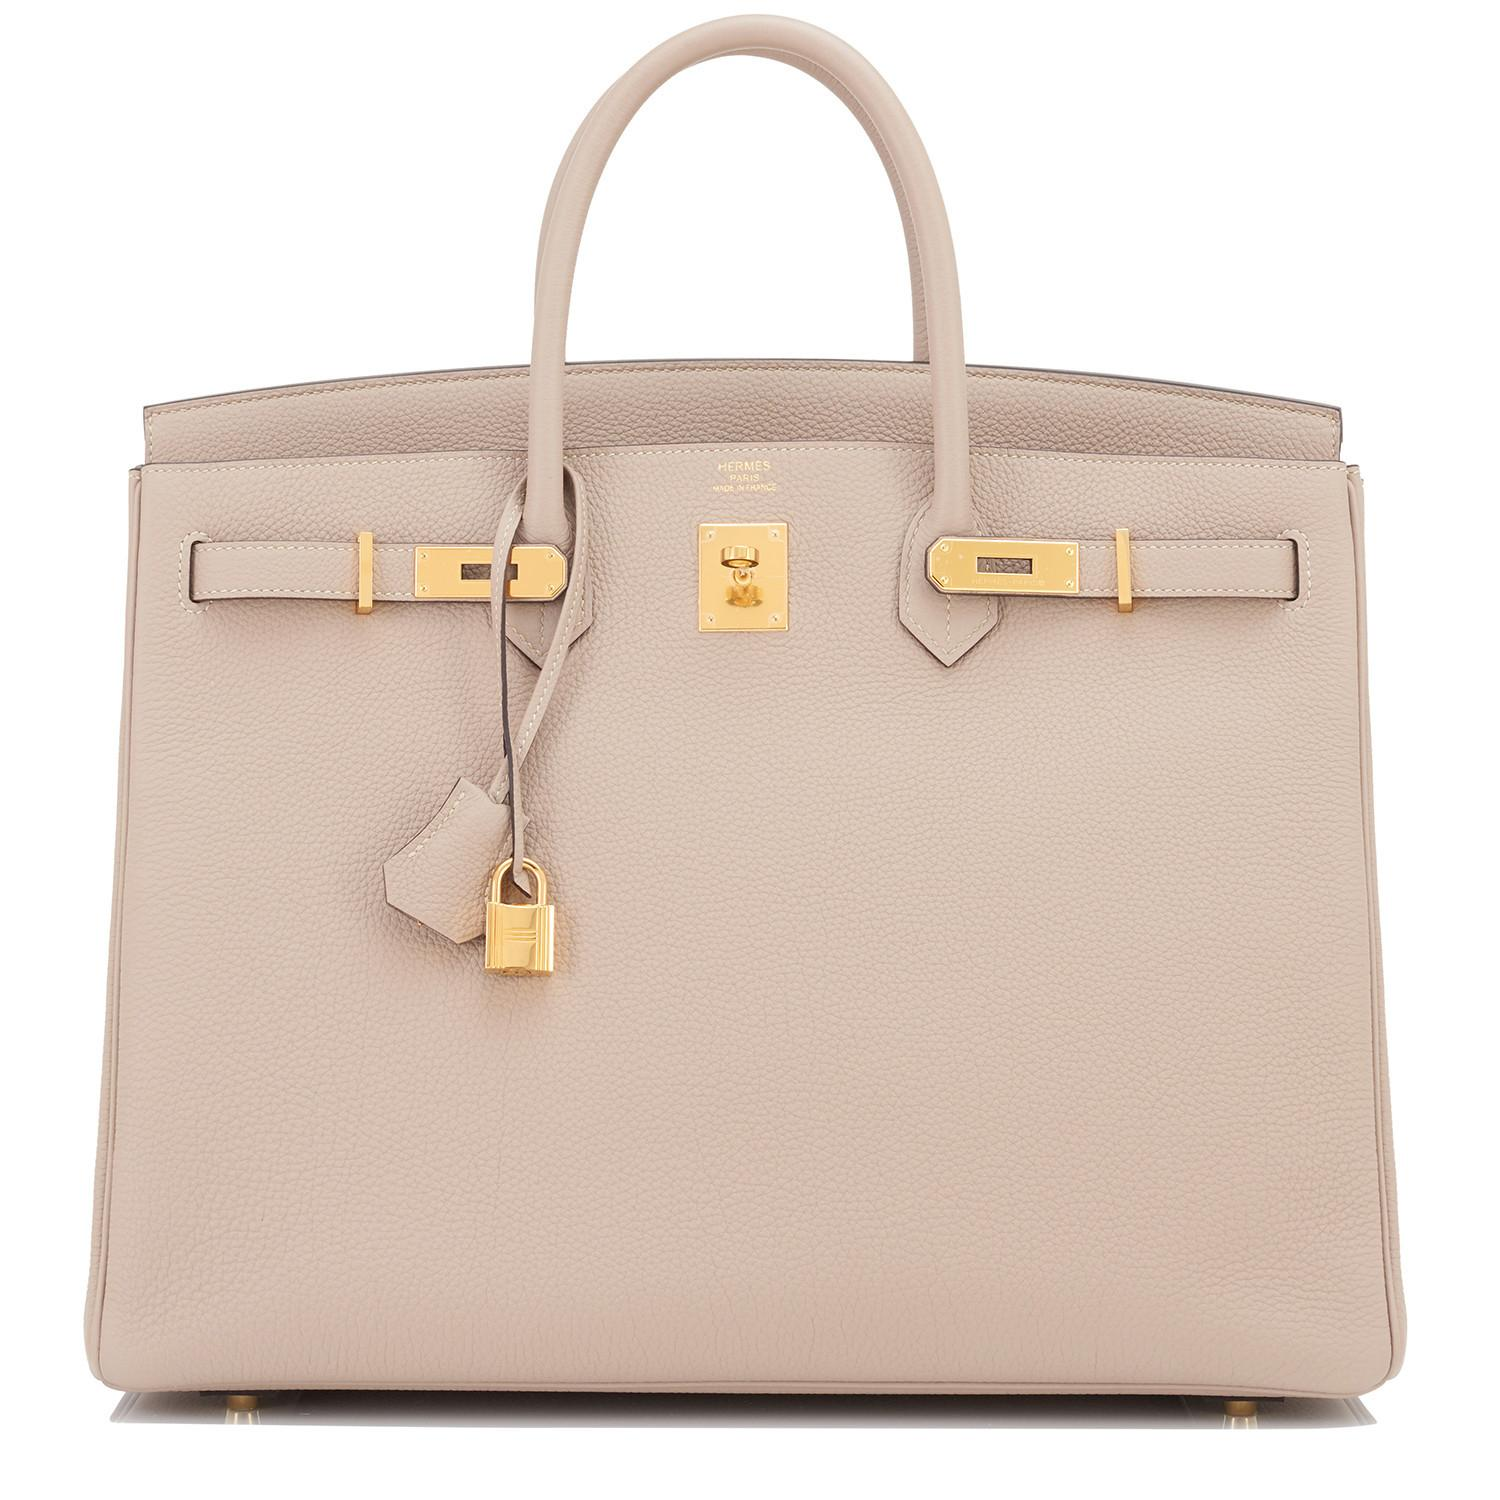 5bf3e0a906 czech hermes handbag 40 wedding 28fce 0e15e